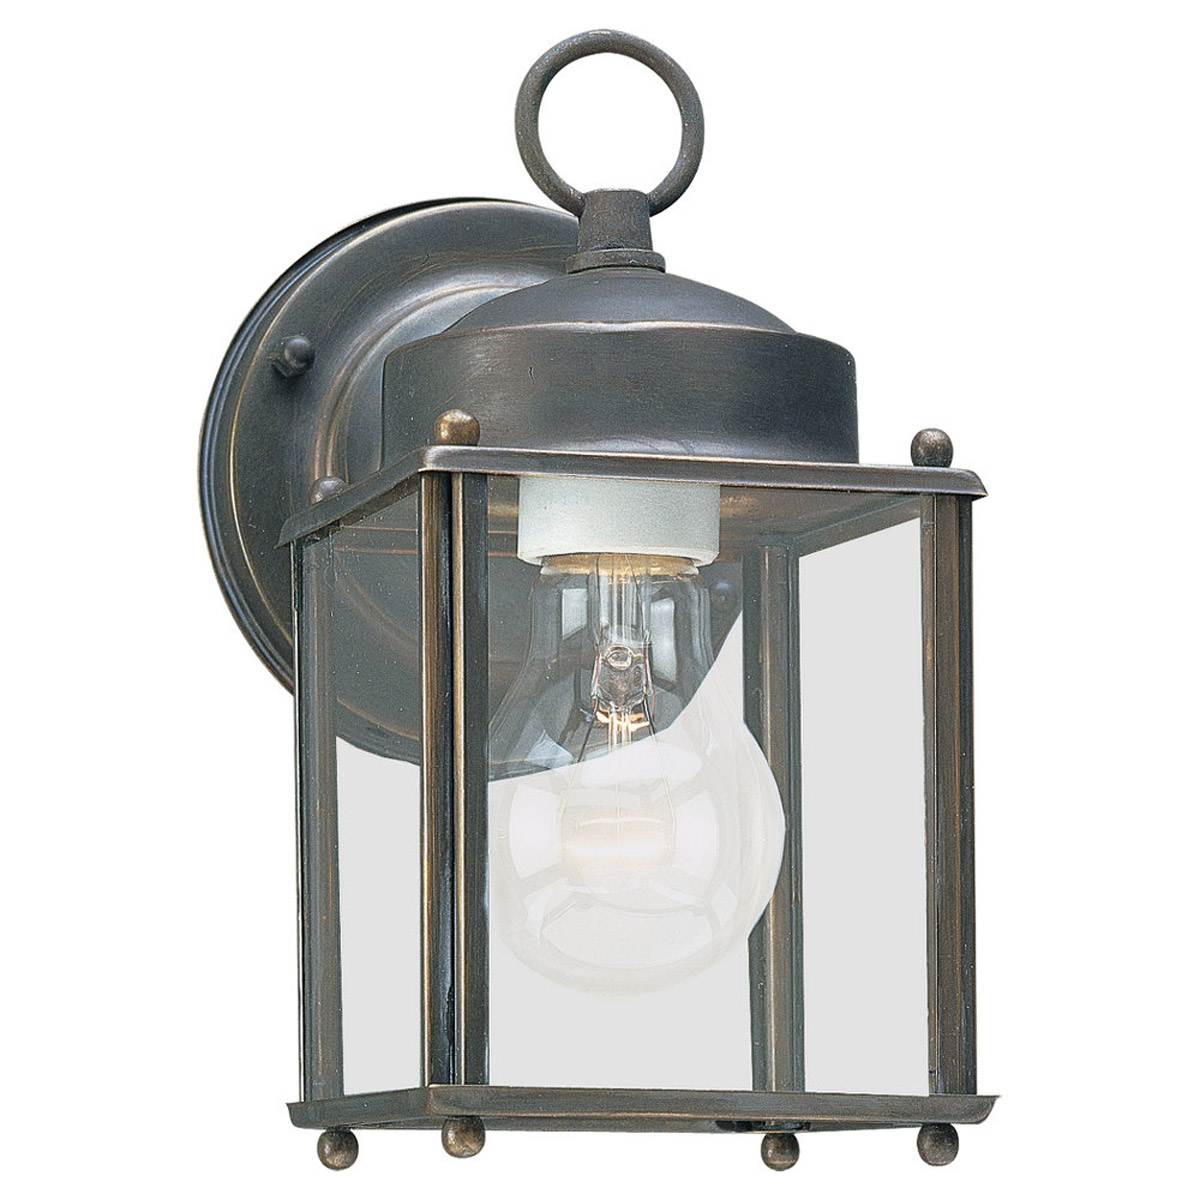 Sea Gull Lighting New Castle 1 Light Outdoor Wall Lantern in Antique Bronze 8592-71 photo